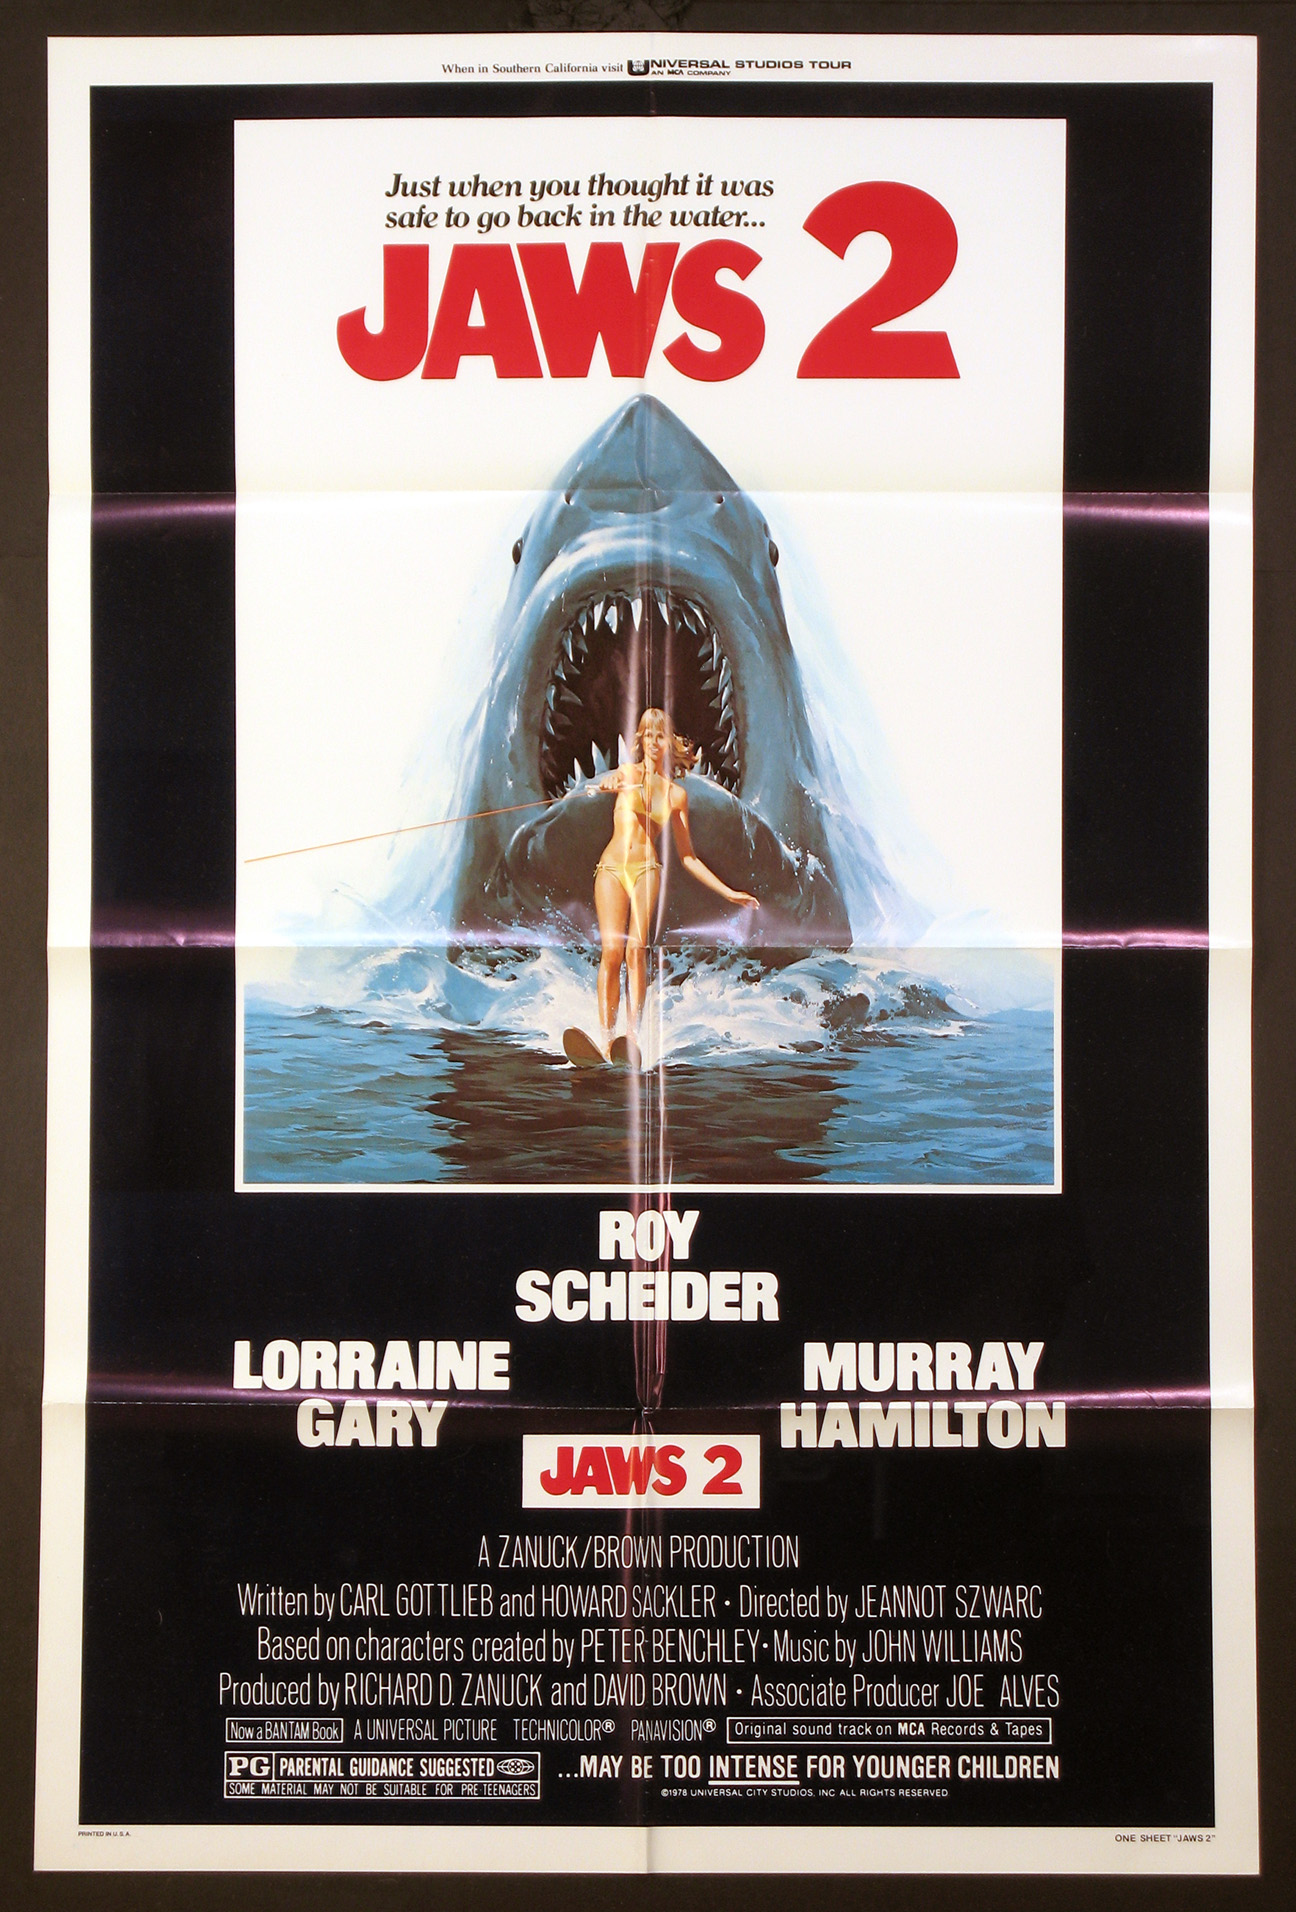 JAWS 2 @ FilmPosters.com